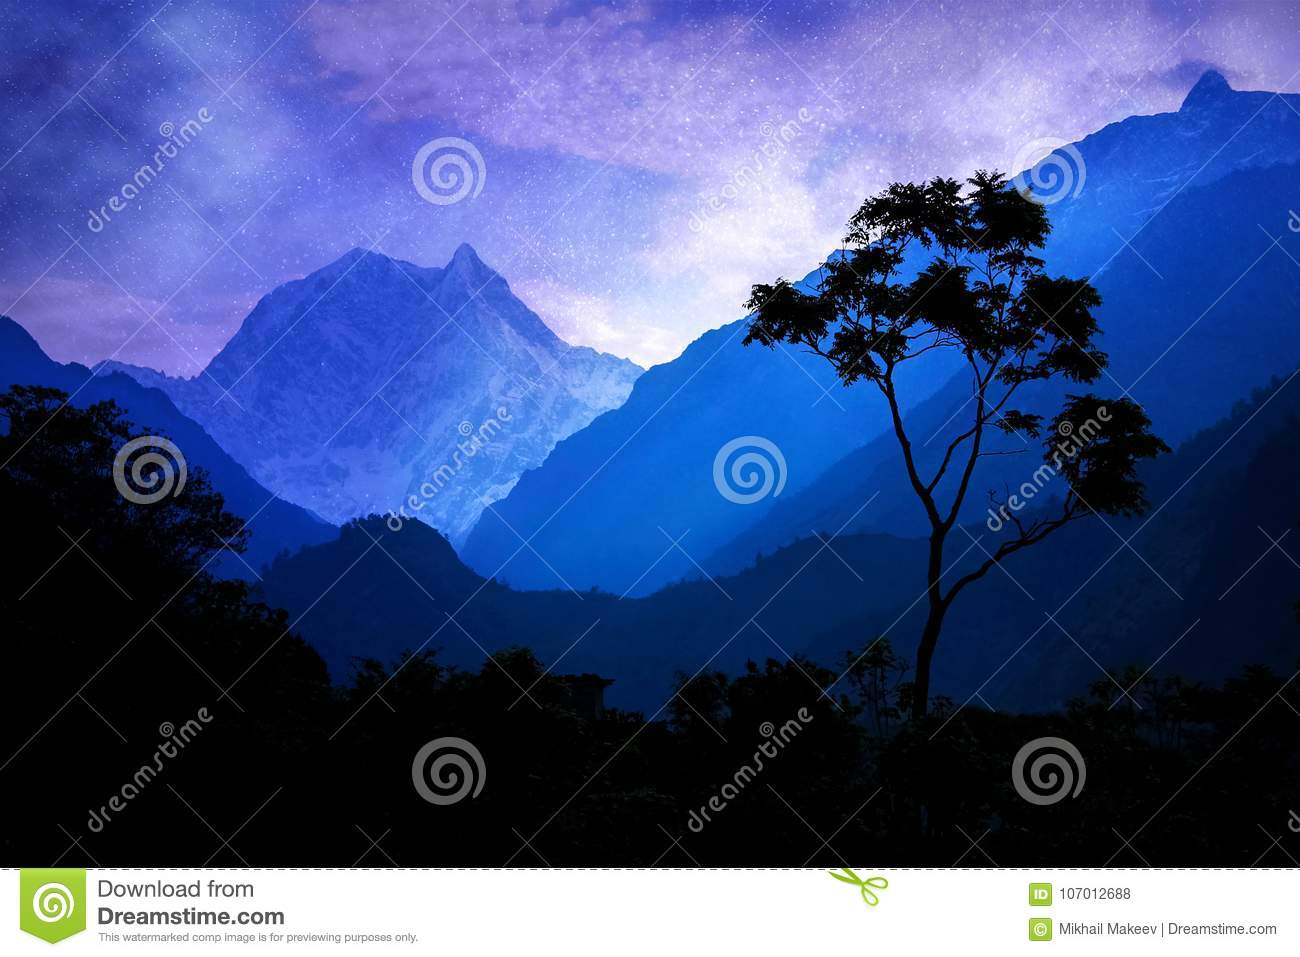 A lonely tree against the background of the Himalayan mountains and night sky.